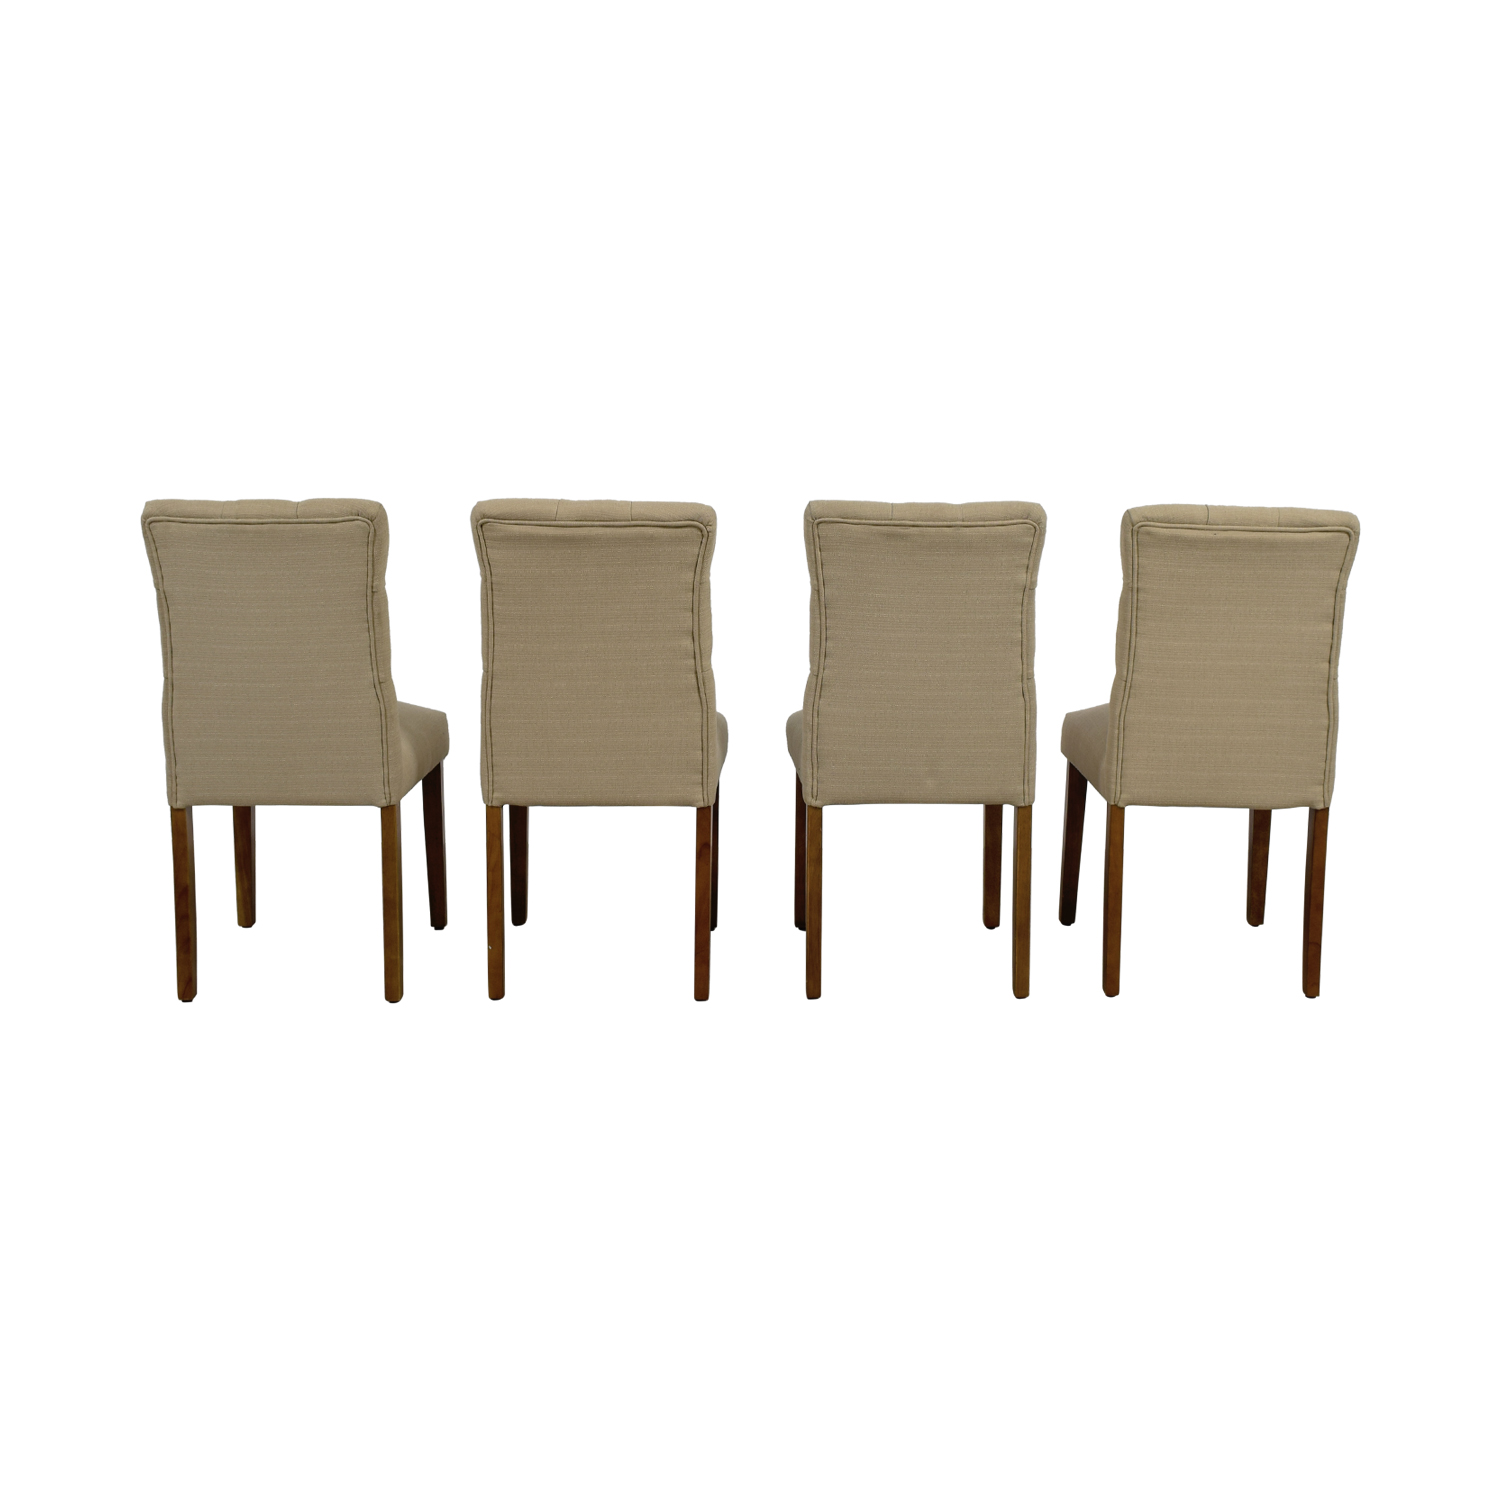 Target Target Brookline Threshold Tan Tufted Dining Chairs coupon